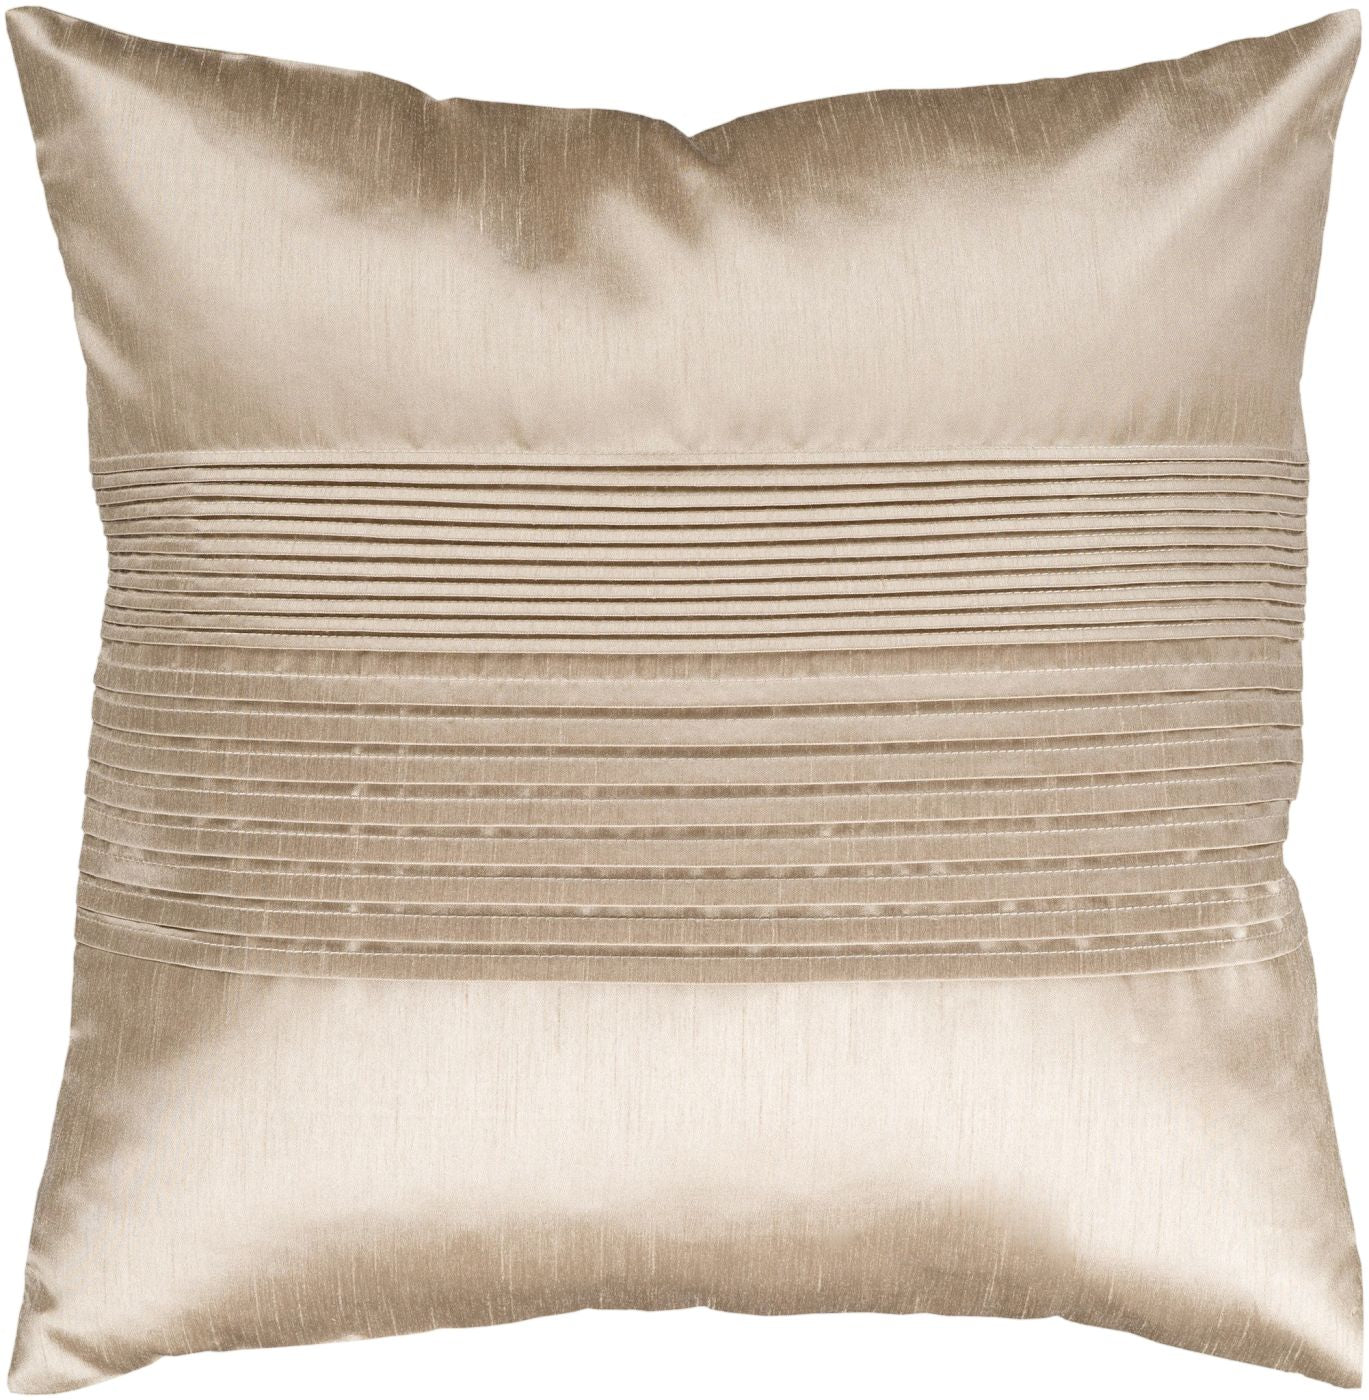 Throw Pillow Warehouse : Surya Solid Pleated Throw Pillow Neutral HH019-1818D. Only $36.00 at Contemporary Furniture ...